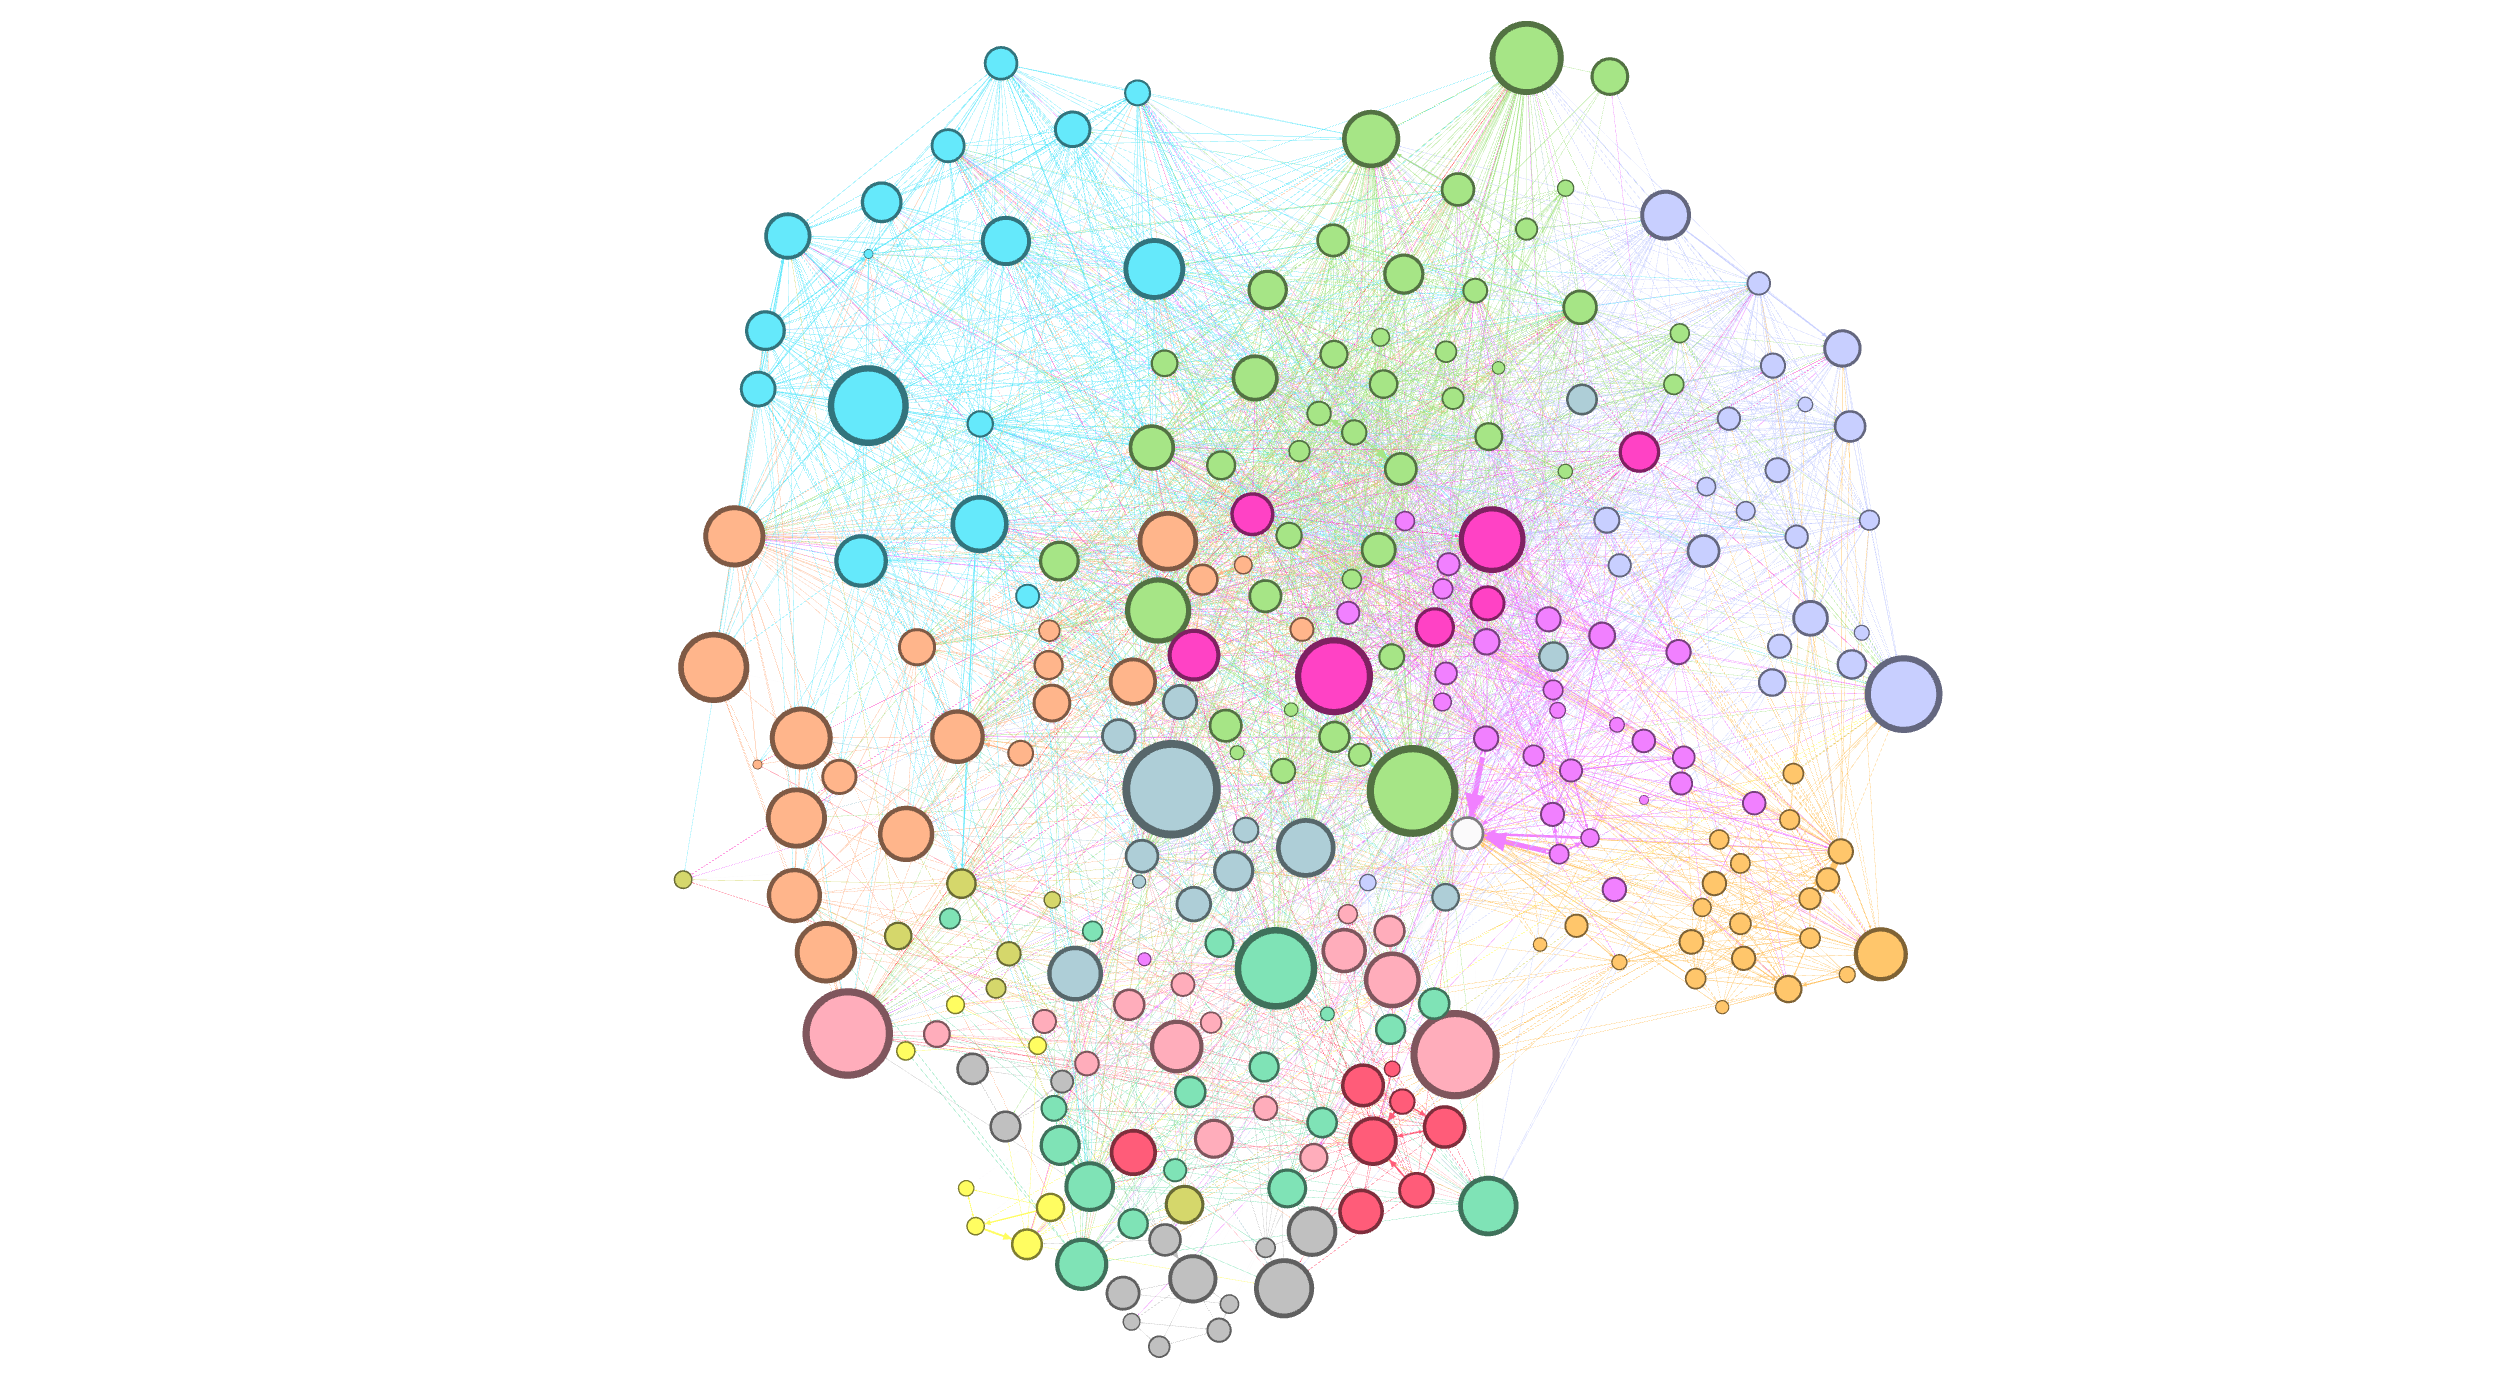 umair-akbar-1*Xca2gh6H A5b HLdyRYavg - A Graph-based approach to community detection in Twitter Networks